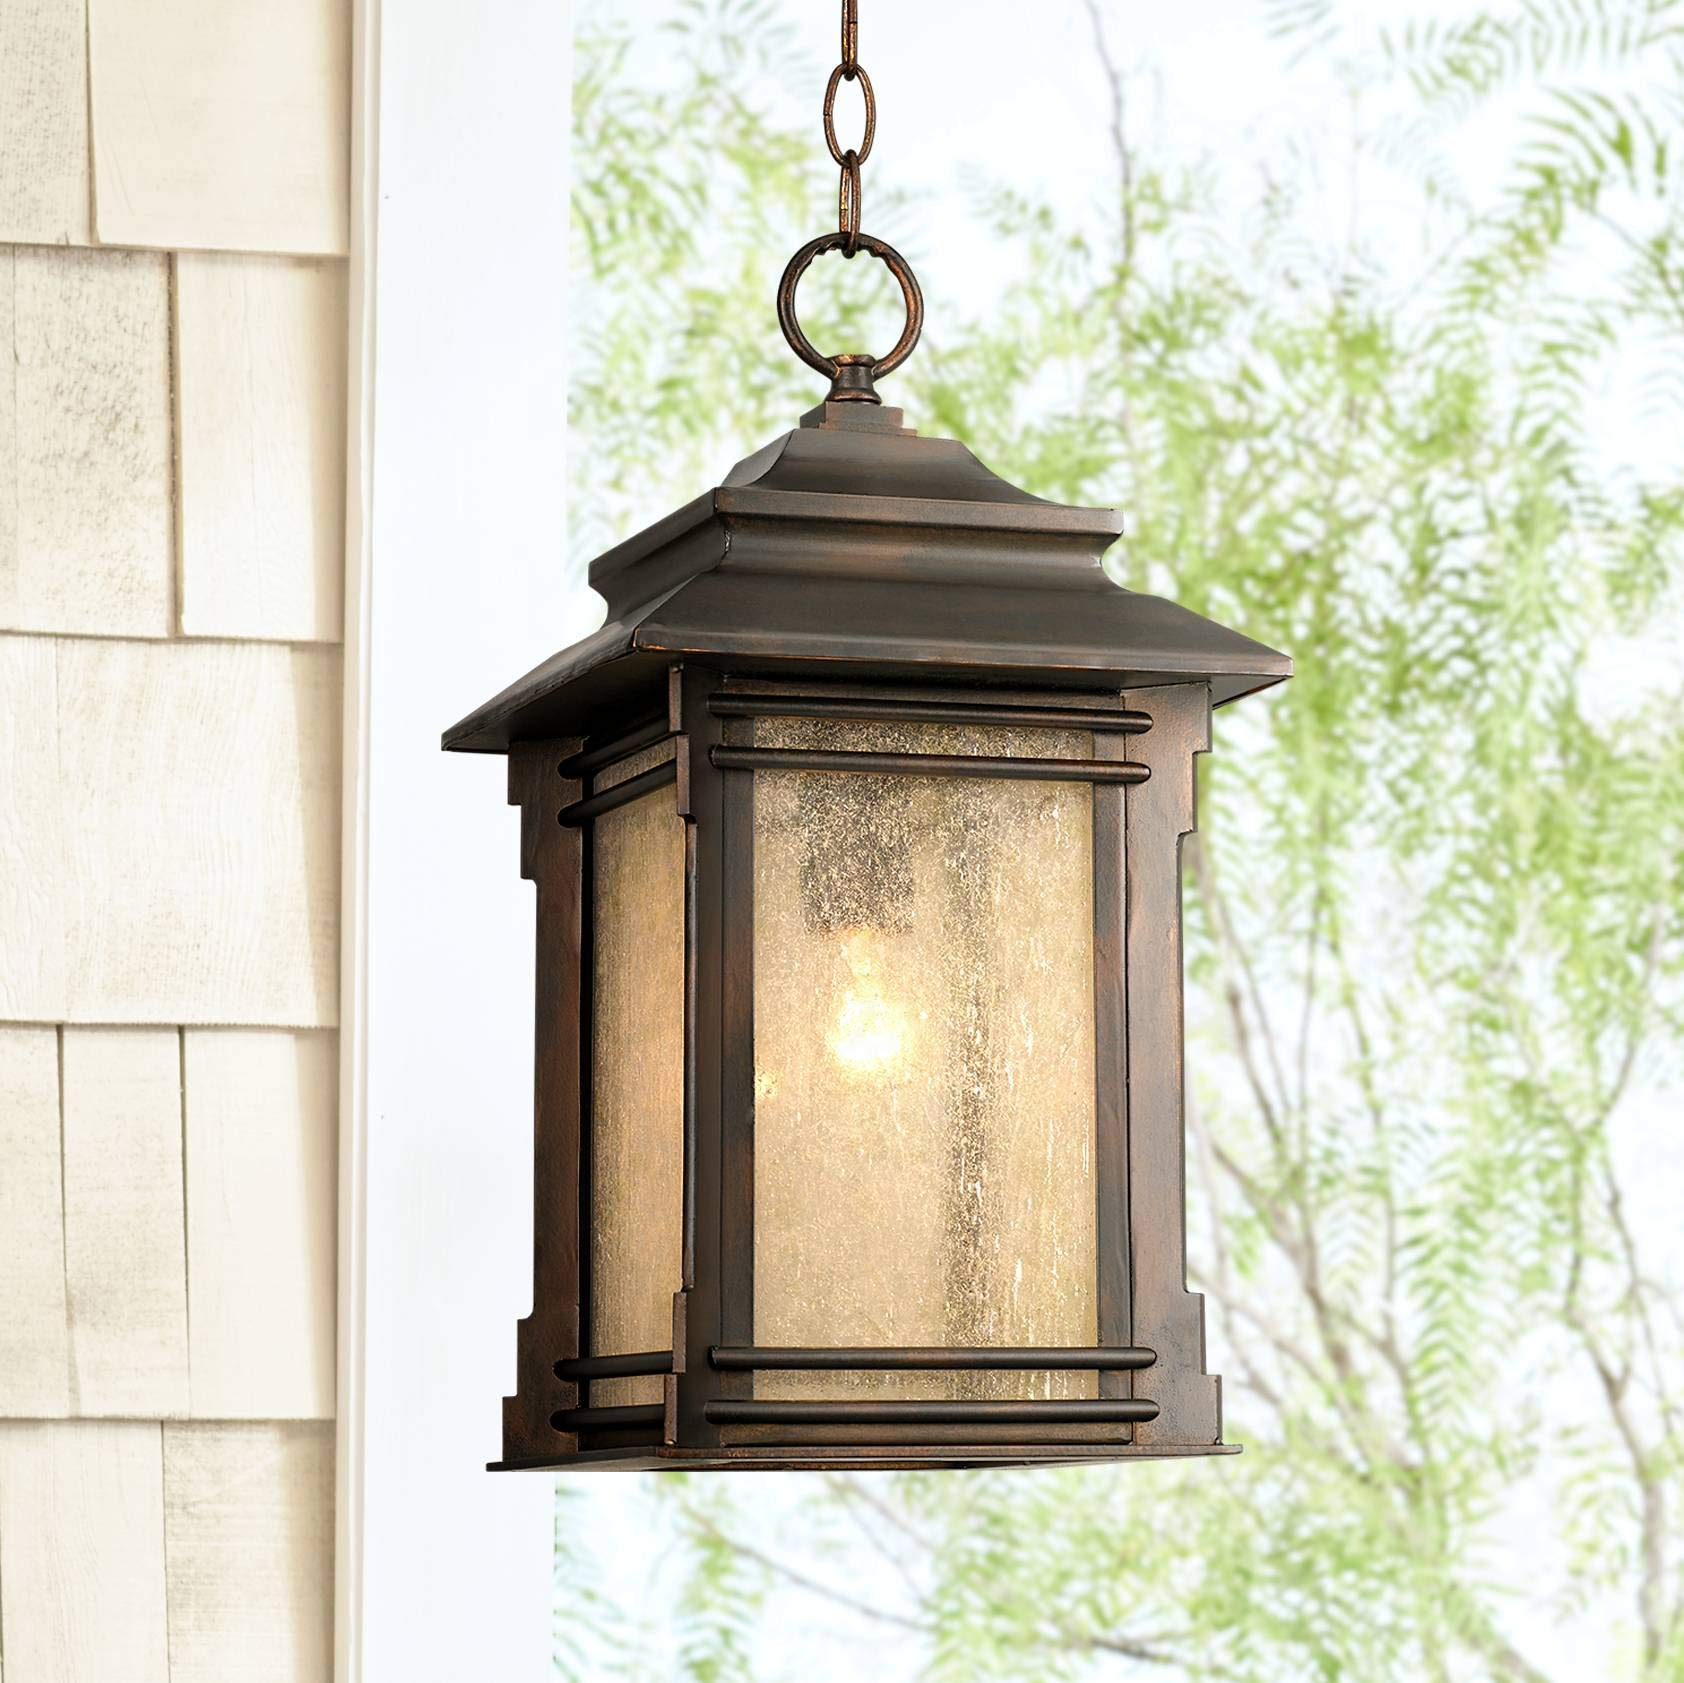 Hickory Point Rustic Outdoor Ceiling Light Hanging Lantern Walnut Bronze 19 1/4'' Frosted Glass Damp Rated for Porch Patio - Franklin Iron Works